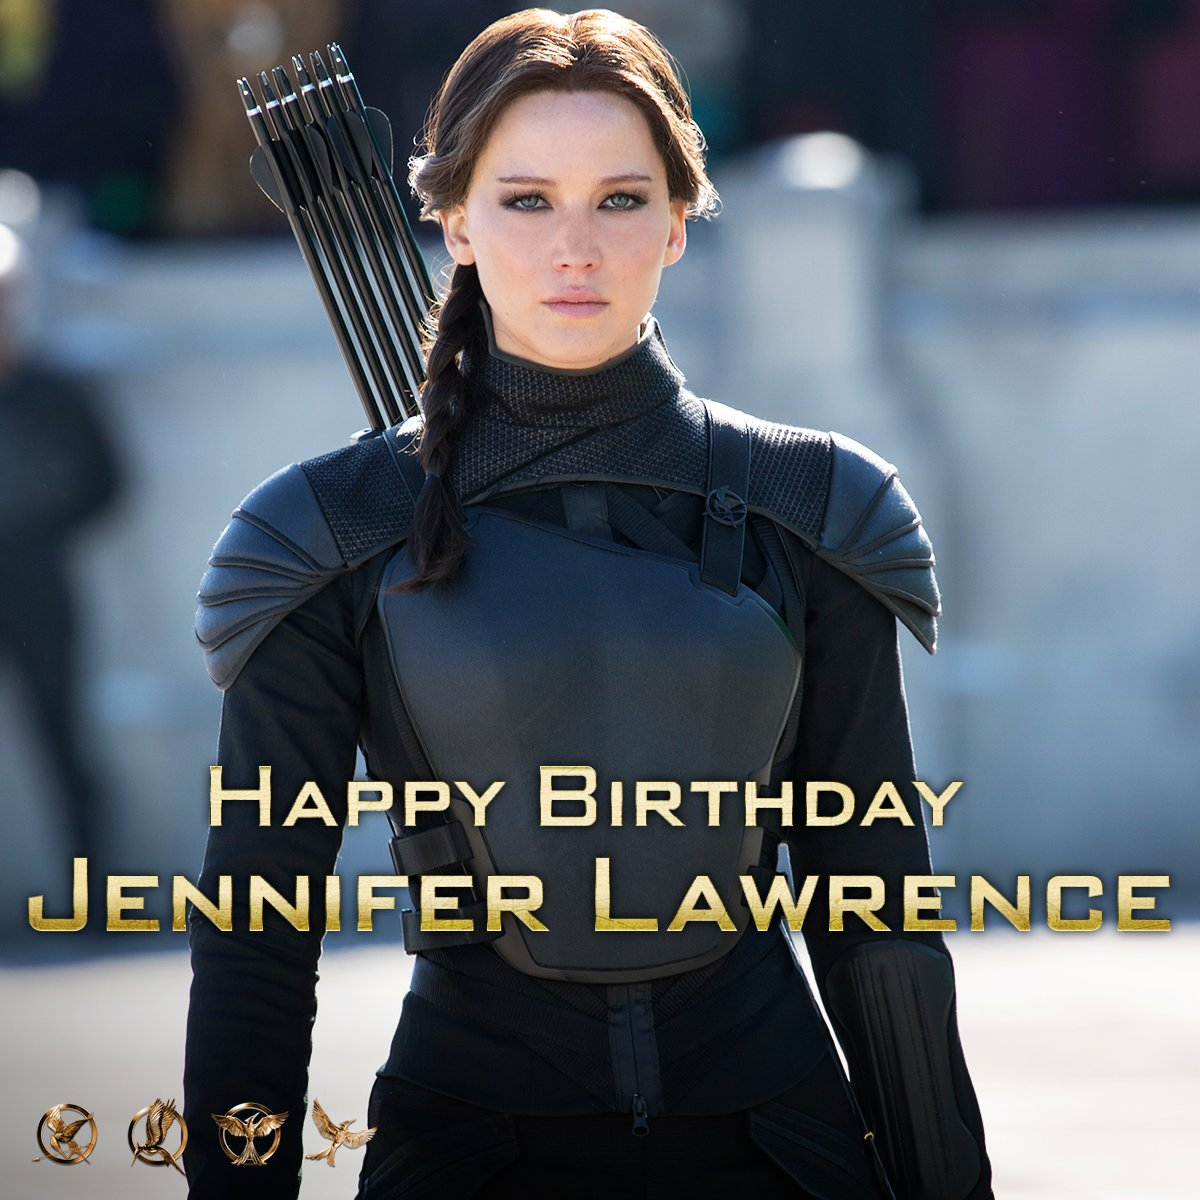 HBD #JenniferLawrence! #TheHungerGames wouldn't be the same without you. https://t.co/MV9JFTnAAb